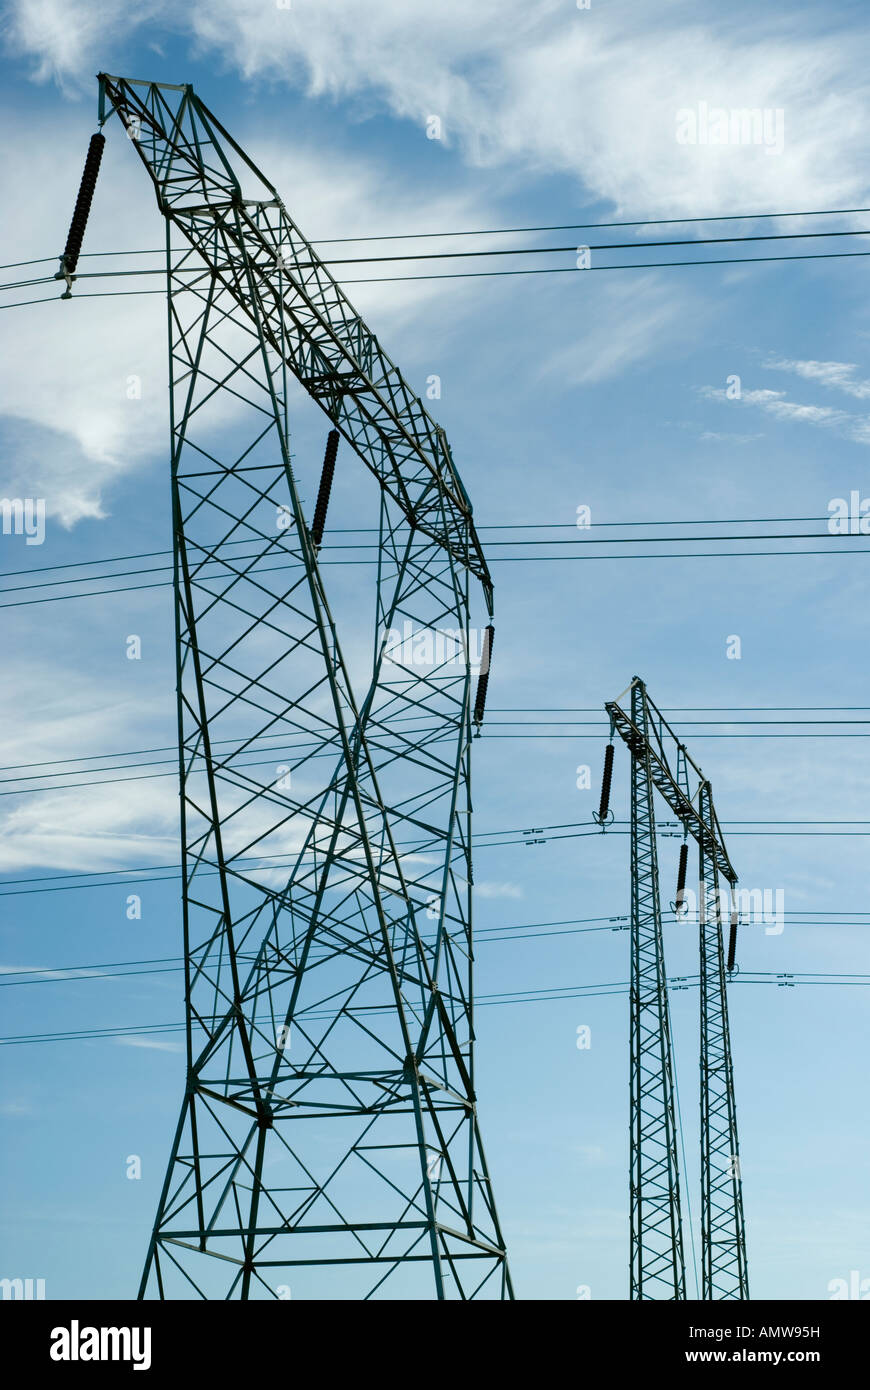 High Voltage Electricity Transmission Towers - Stock Image